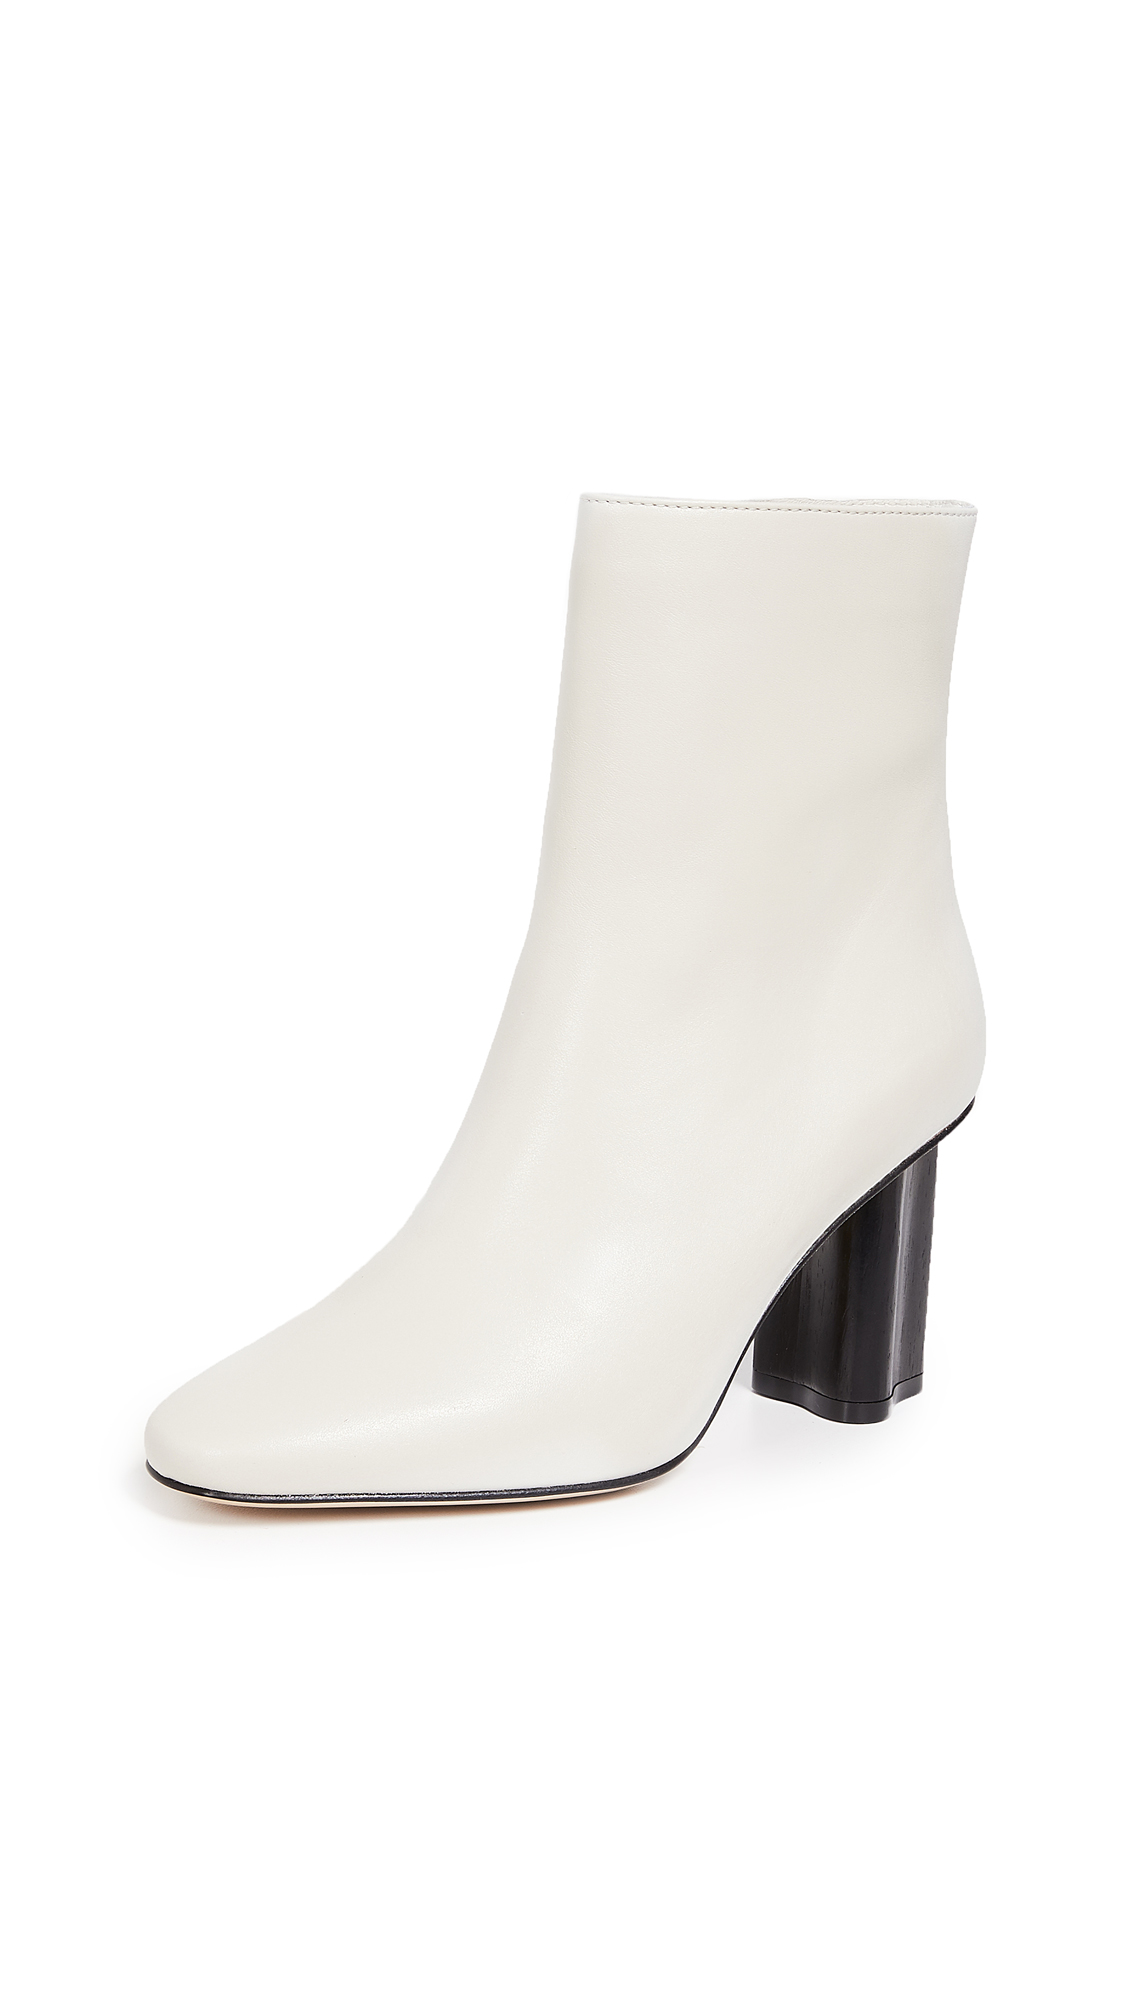 WANT Les Essentiels Lisa Ankle Boots - Chalk/Black